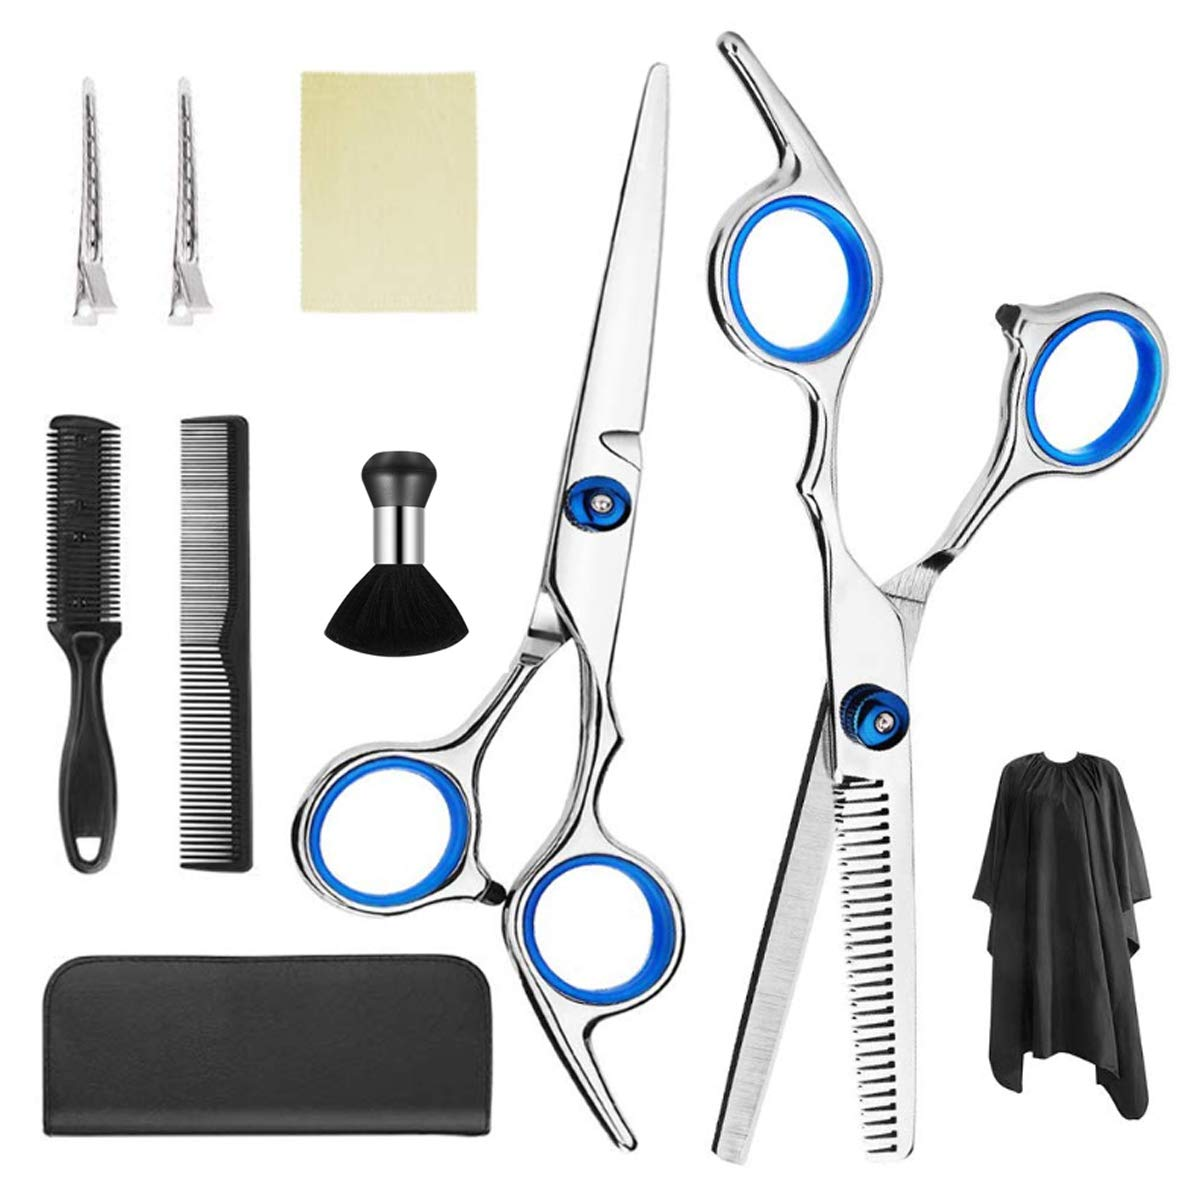 Pumoes 10 PCS Hair Cutting Scissors Kit Professional Hair Trimming Set with Thinning Shears,Hair Razor Comb,Clips,Cape for Men Women Pet Hairdresser Home,Barber Hairdressing Supplies Tools : Beauty & Personal Care